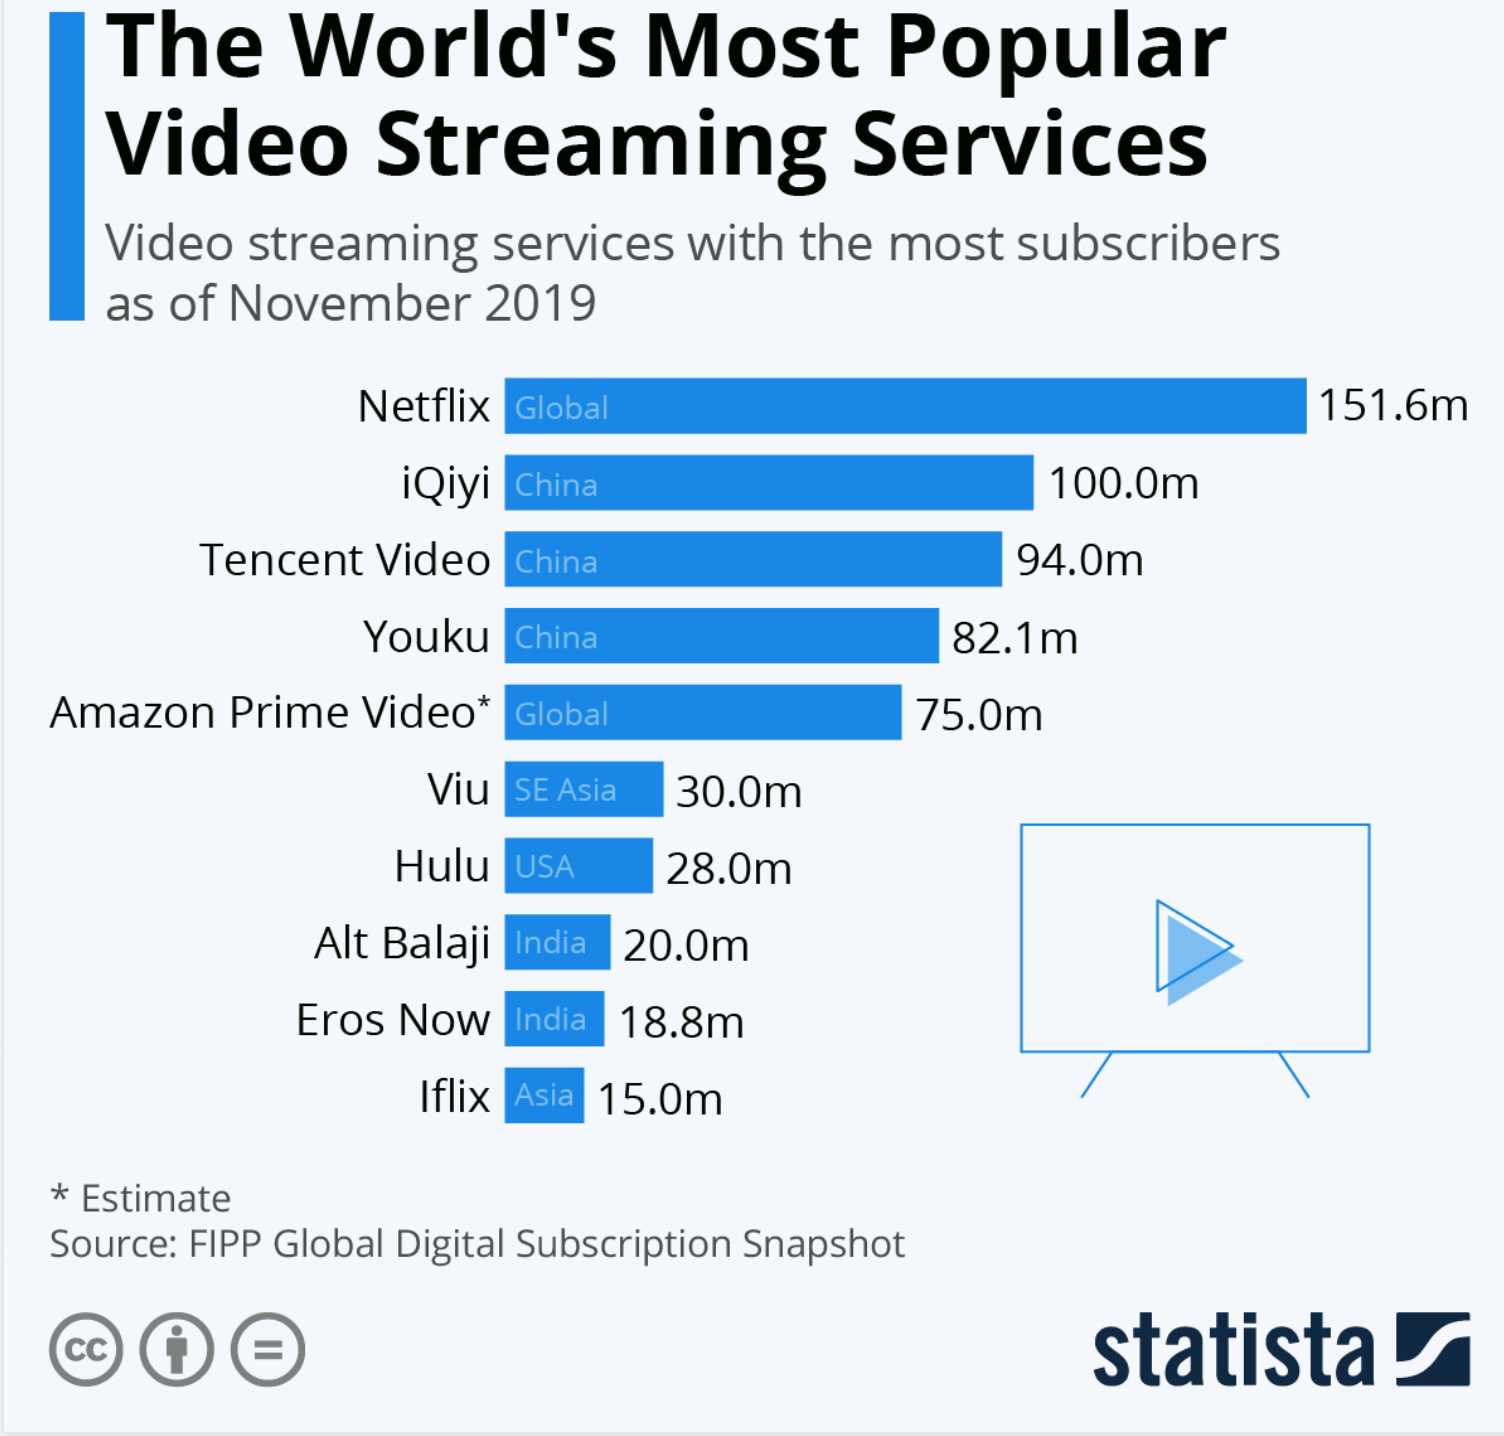 Most popular video streaming services